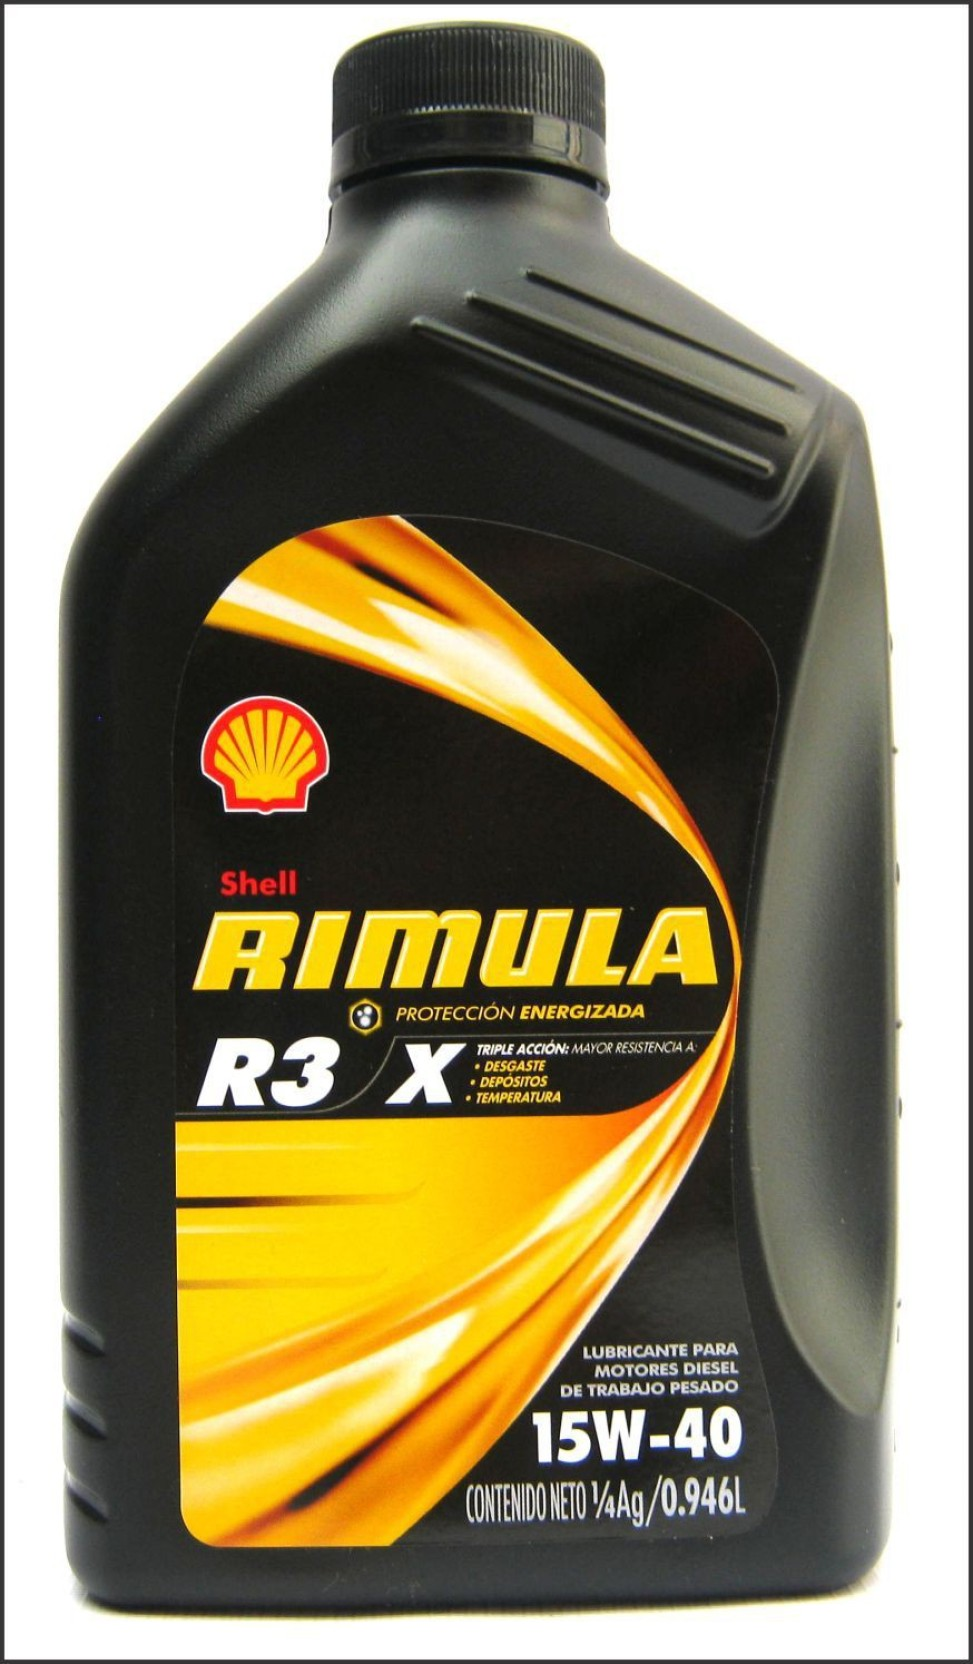 shell rimula r3x 15w40 engine oil price in india buy. Black Bedroom Furniture Sets. Home Design Ideas